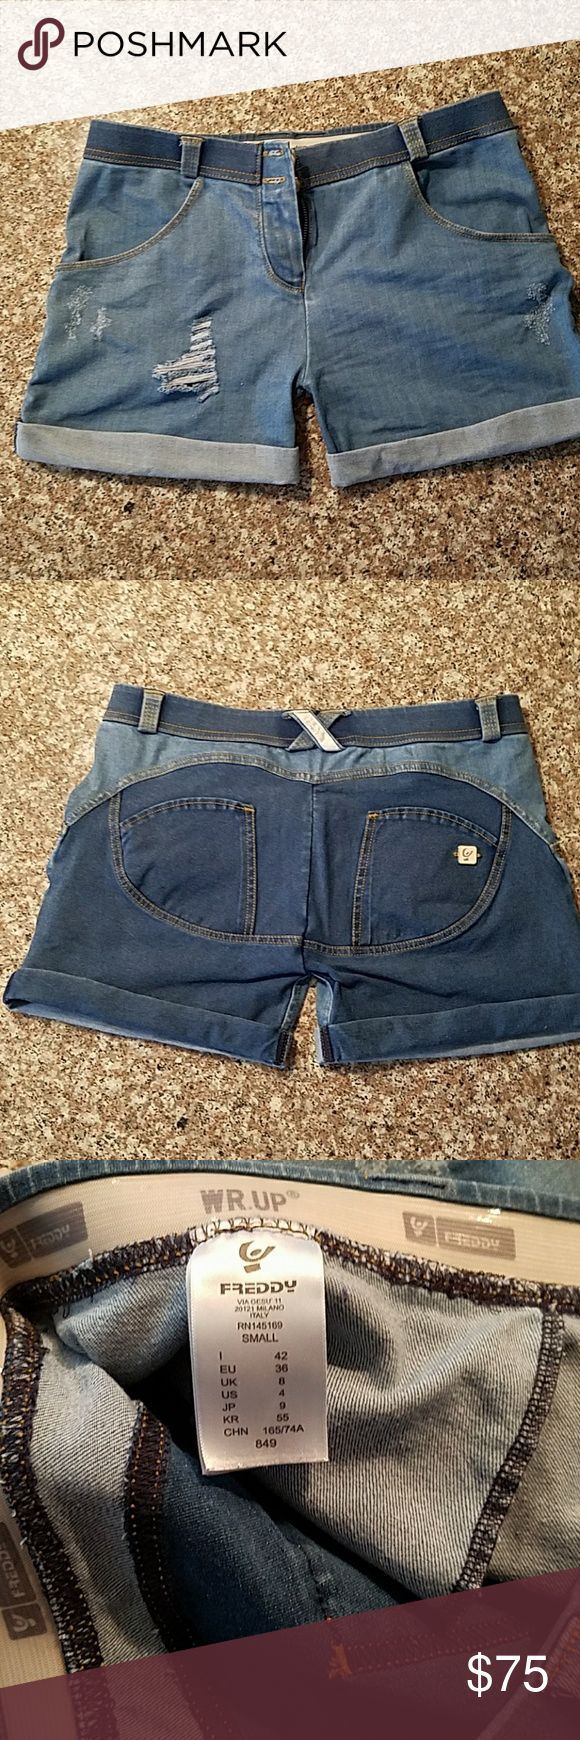 Freddy jean shorts Super flattering, great condition, the most comfortable pair of shorts you'll ever own. Only worn 3 times. Washed cold water gentle cycle. Air dry Freddy Shorts Jean Shorts